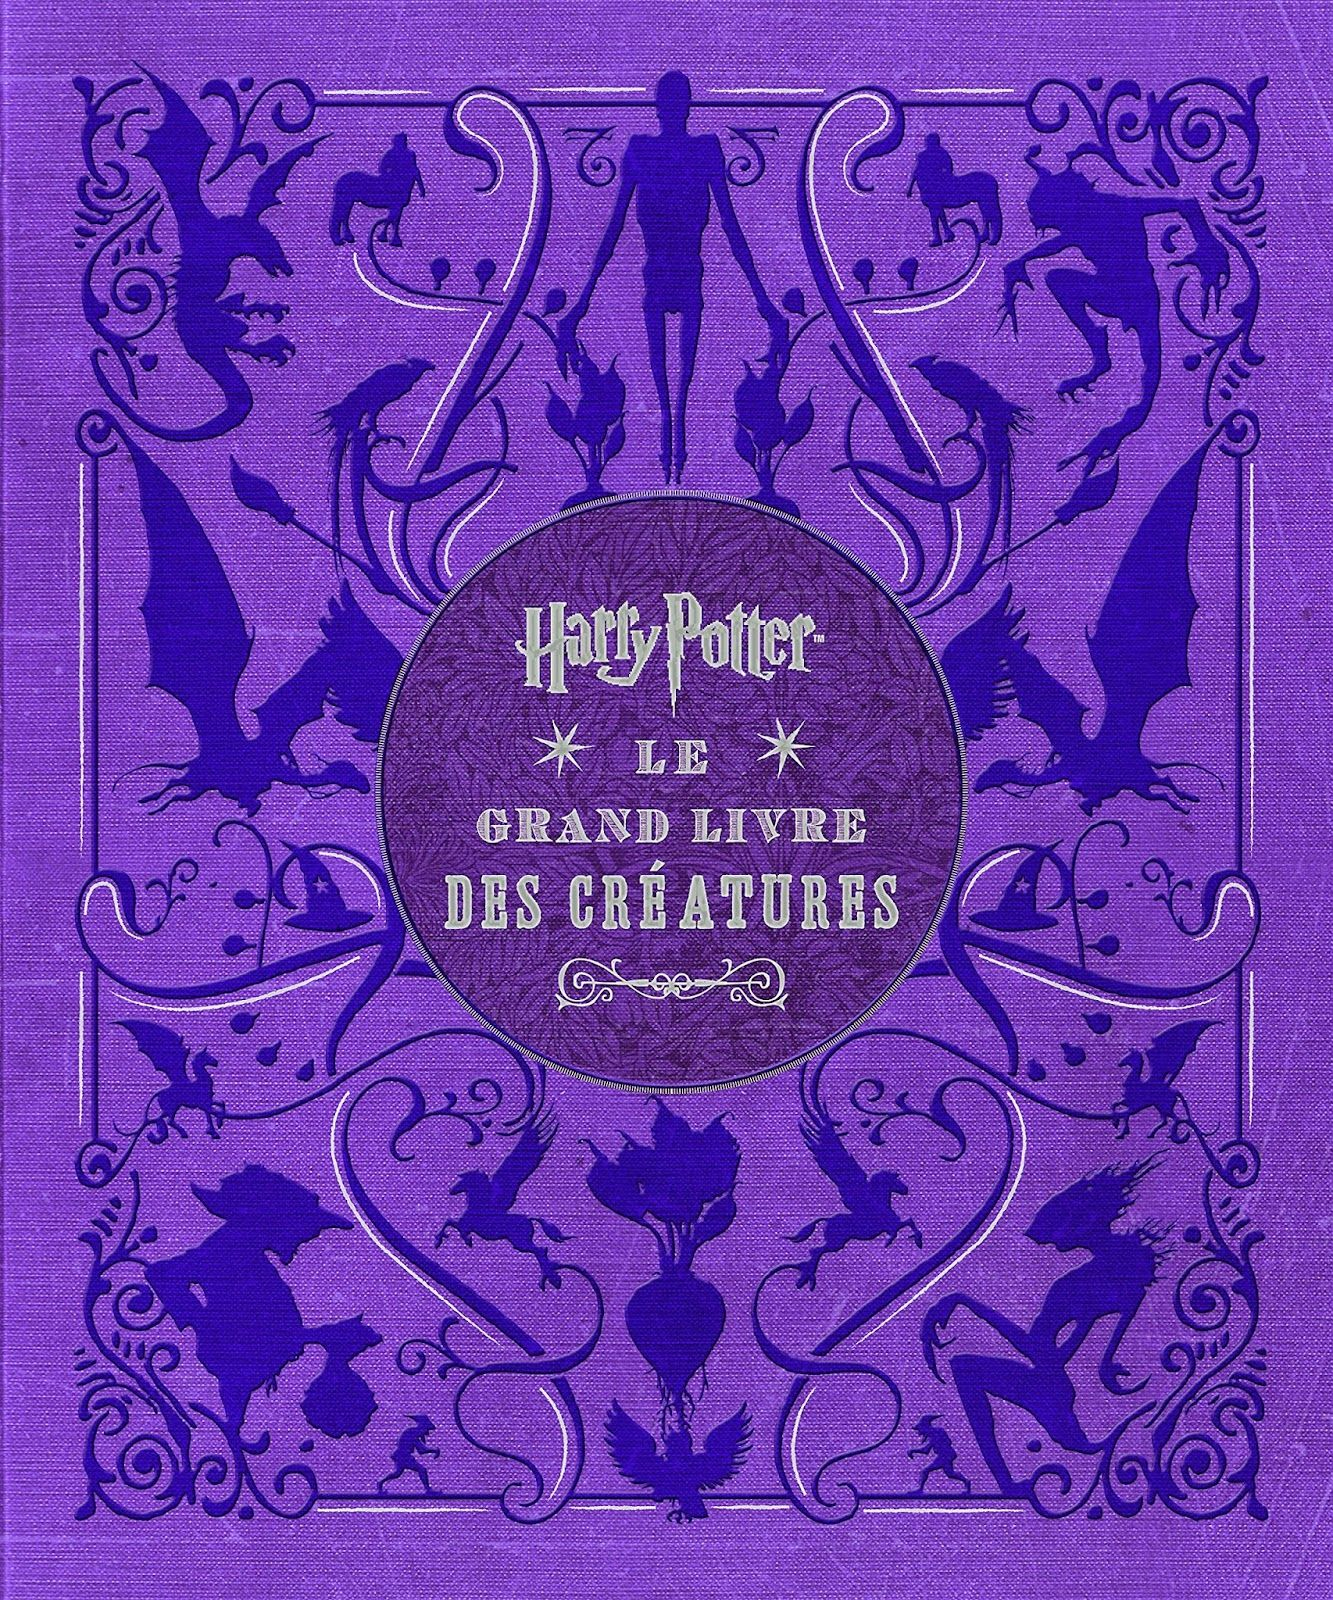 Harry Potter Le Grand Livre Des Creatures Harry Potter